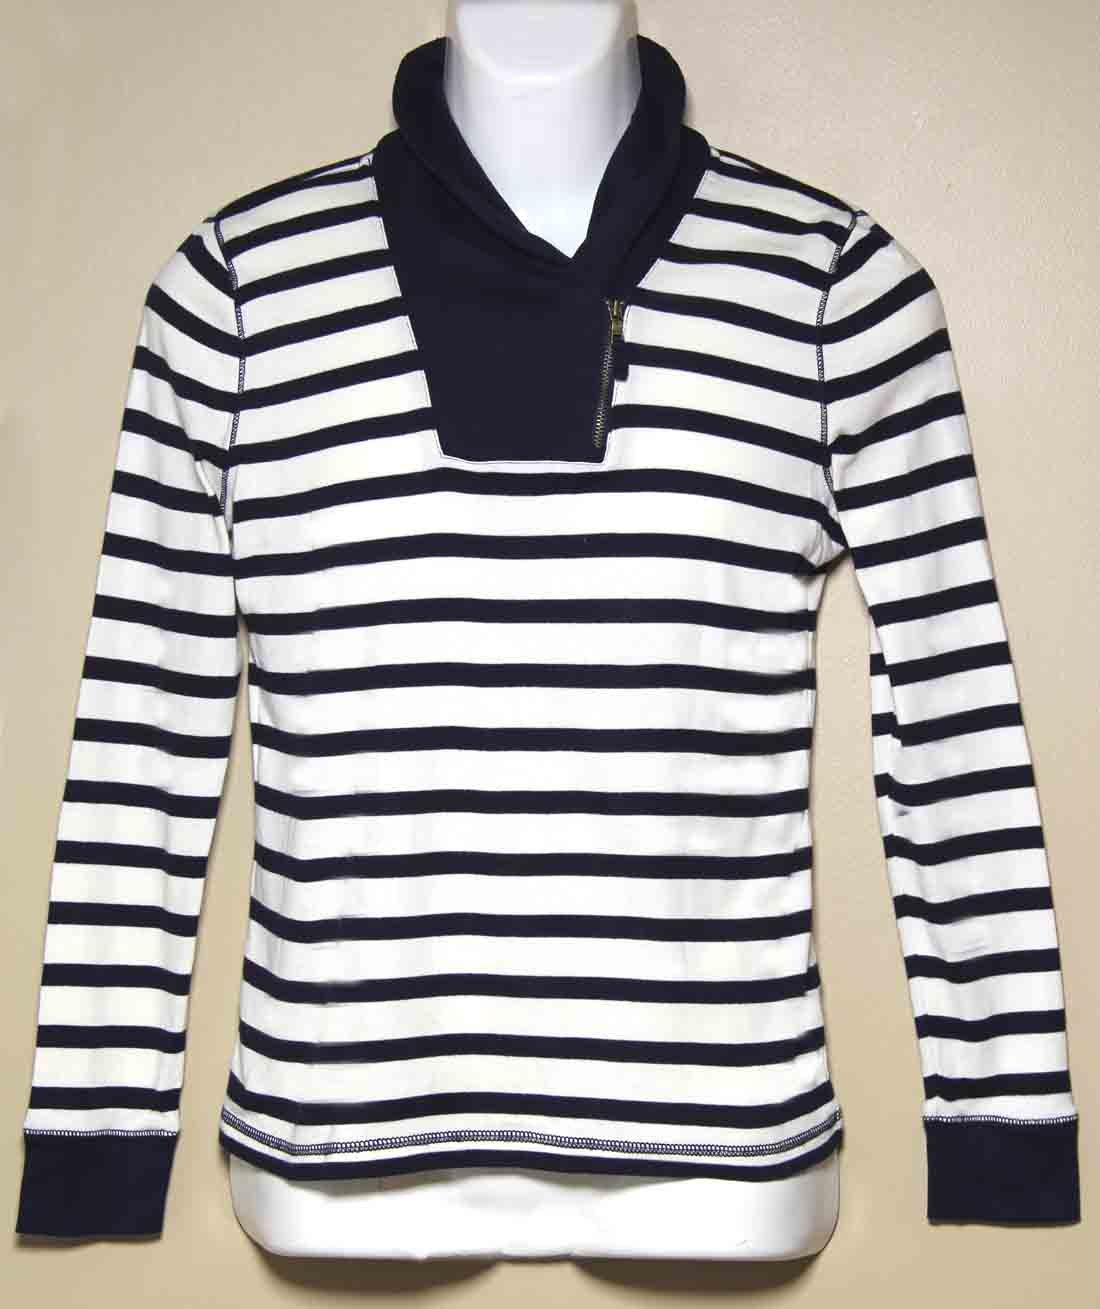 Ralph Lauren Jeans Co Nautical Striped Shirt Navy Blue White Women's Size Medium